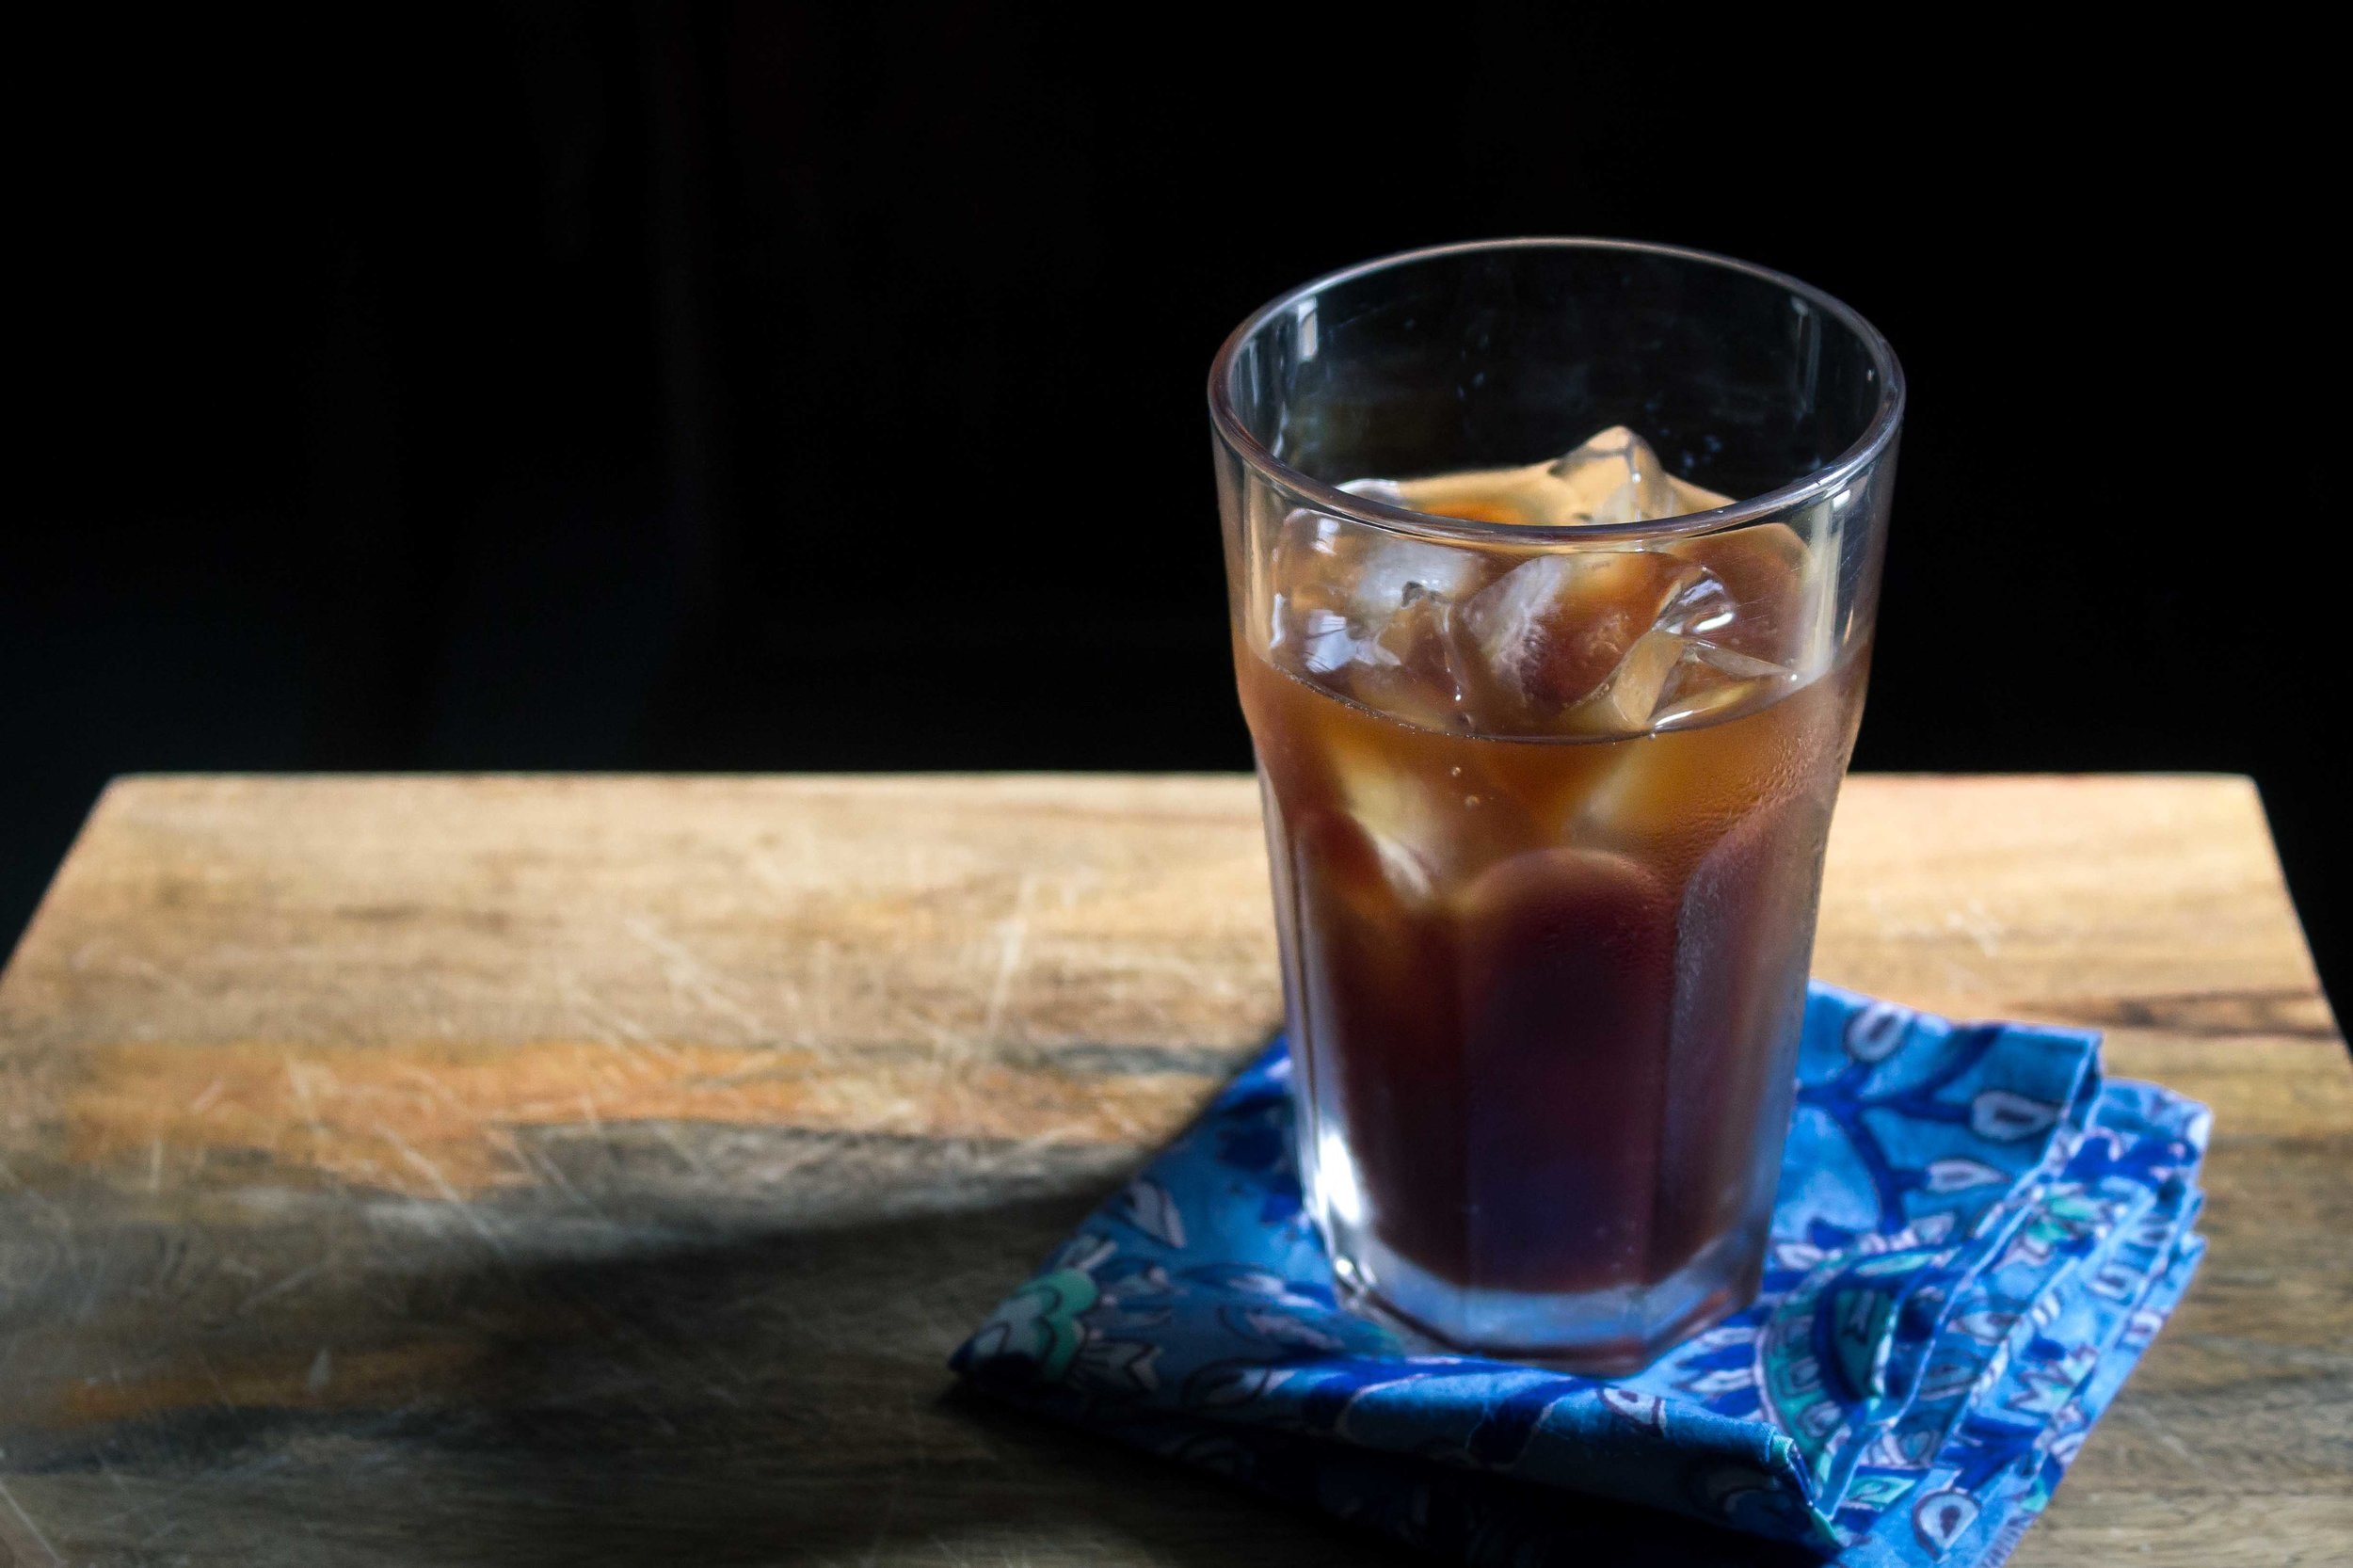 A simple glass of cold brew coffee